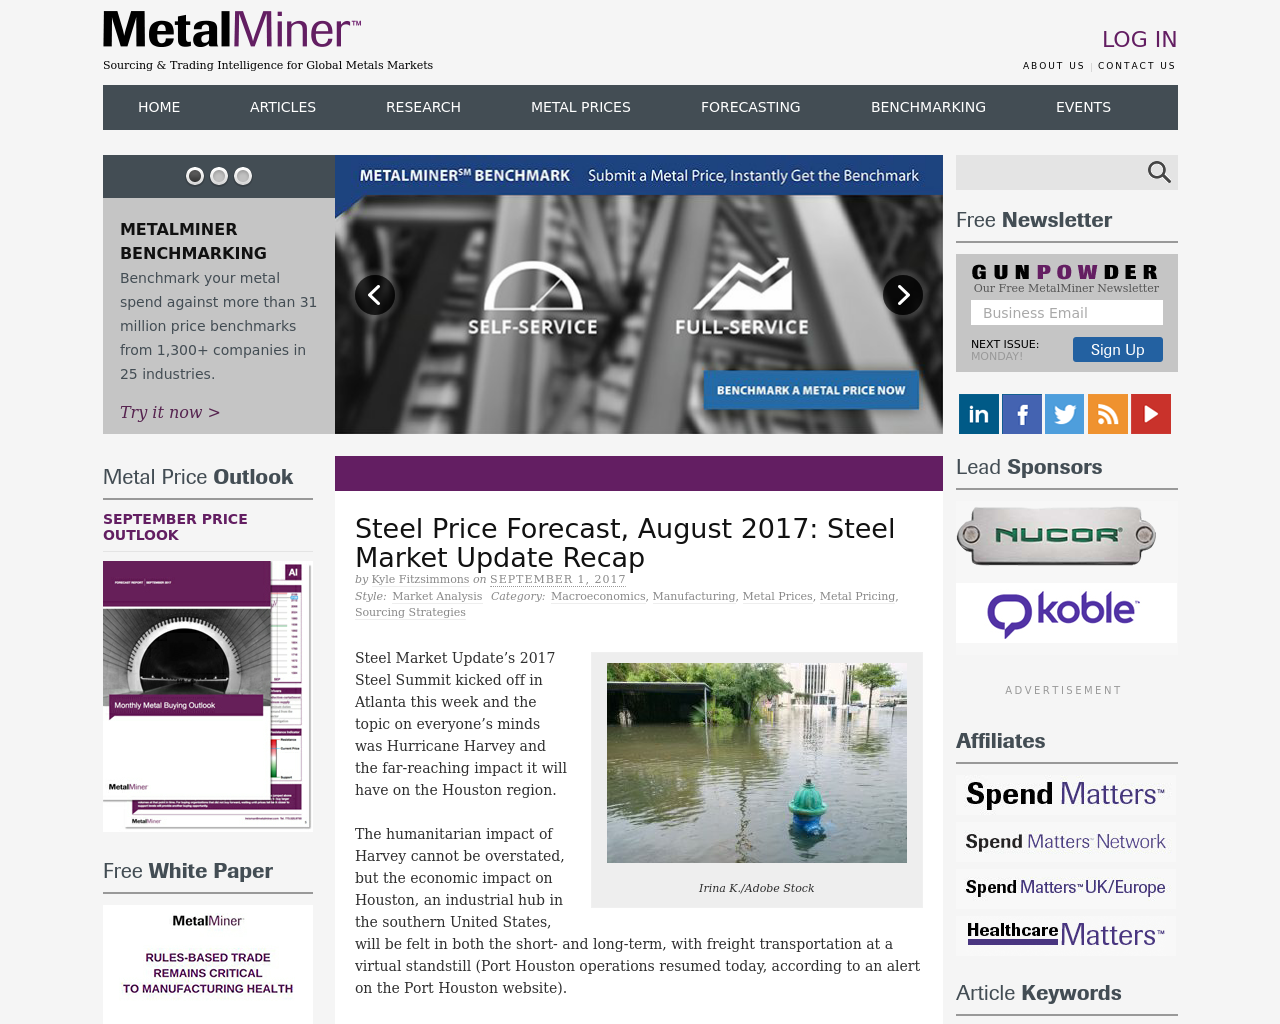 MetalMiner-Advertising-Reviews-Pricing